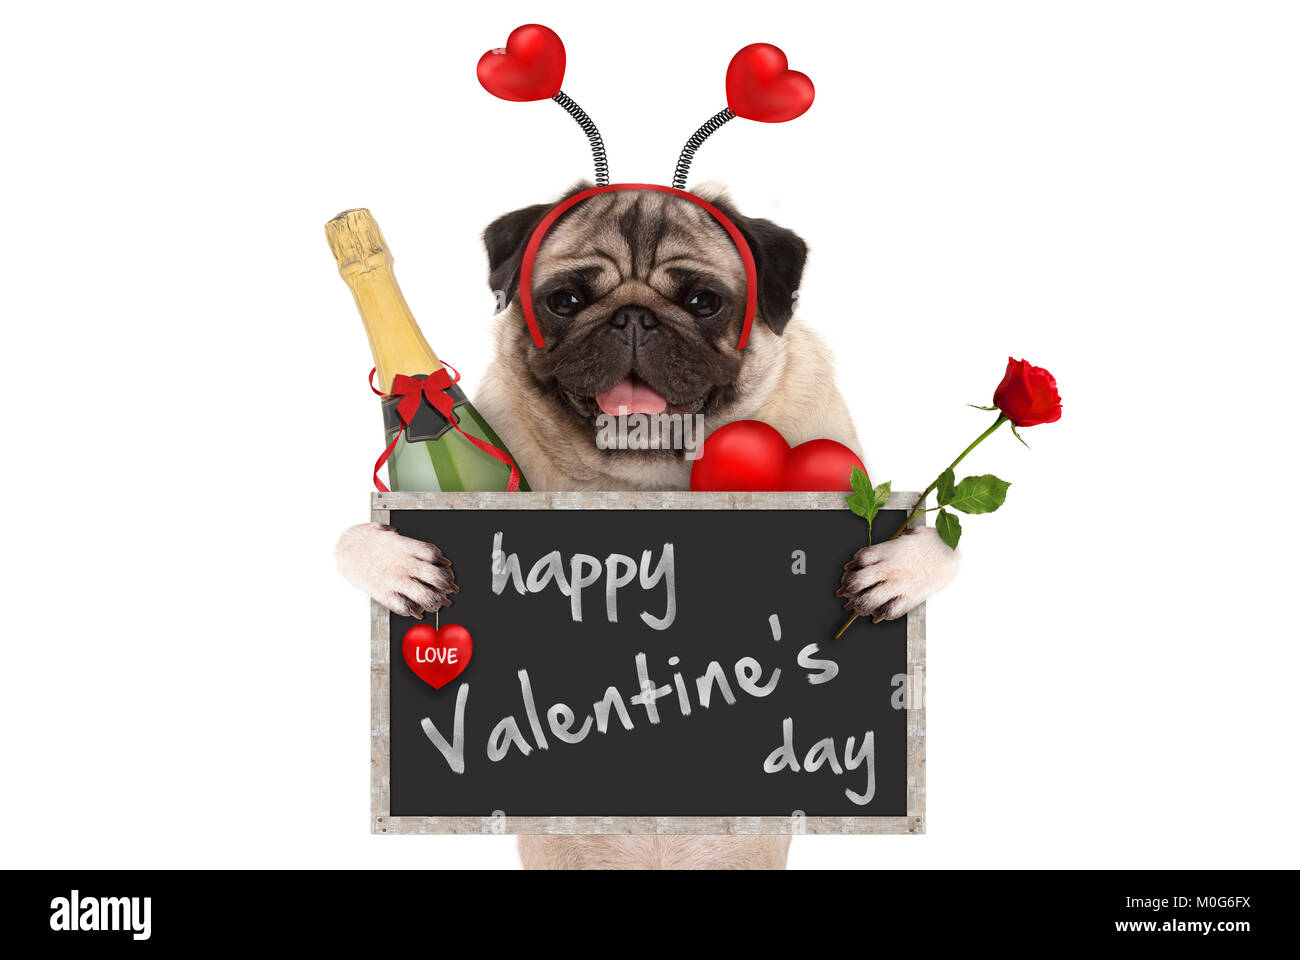 cute valentine's day pug dog with blackboard, champagne bottle, hearts diadem and rose, isolated on white background - Stock Image